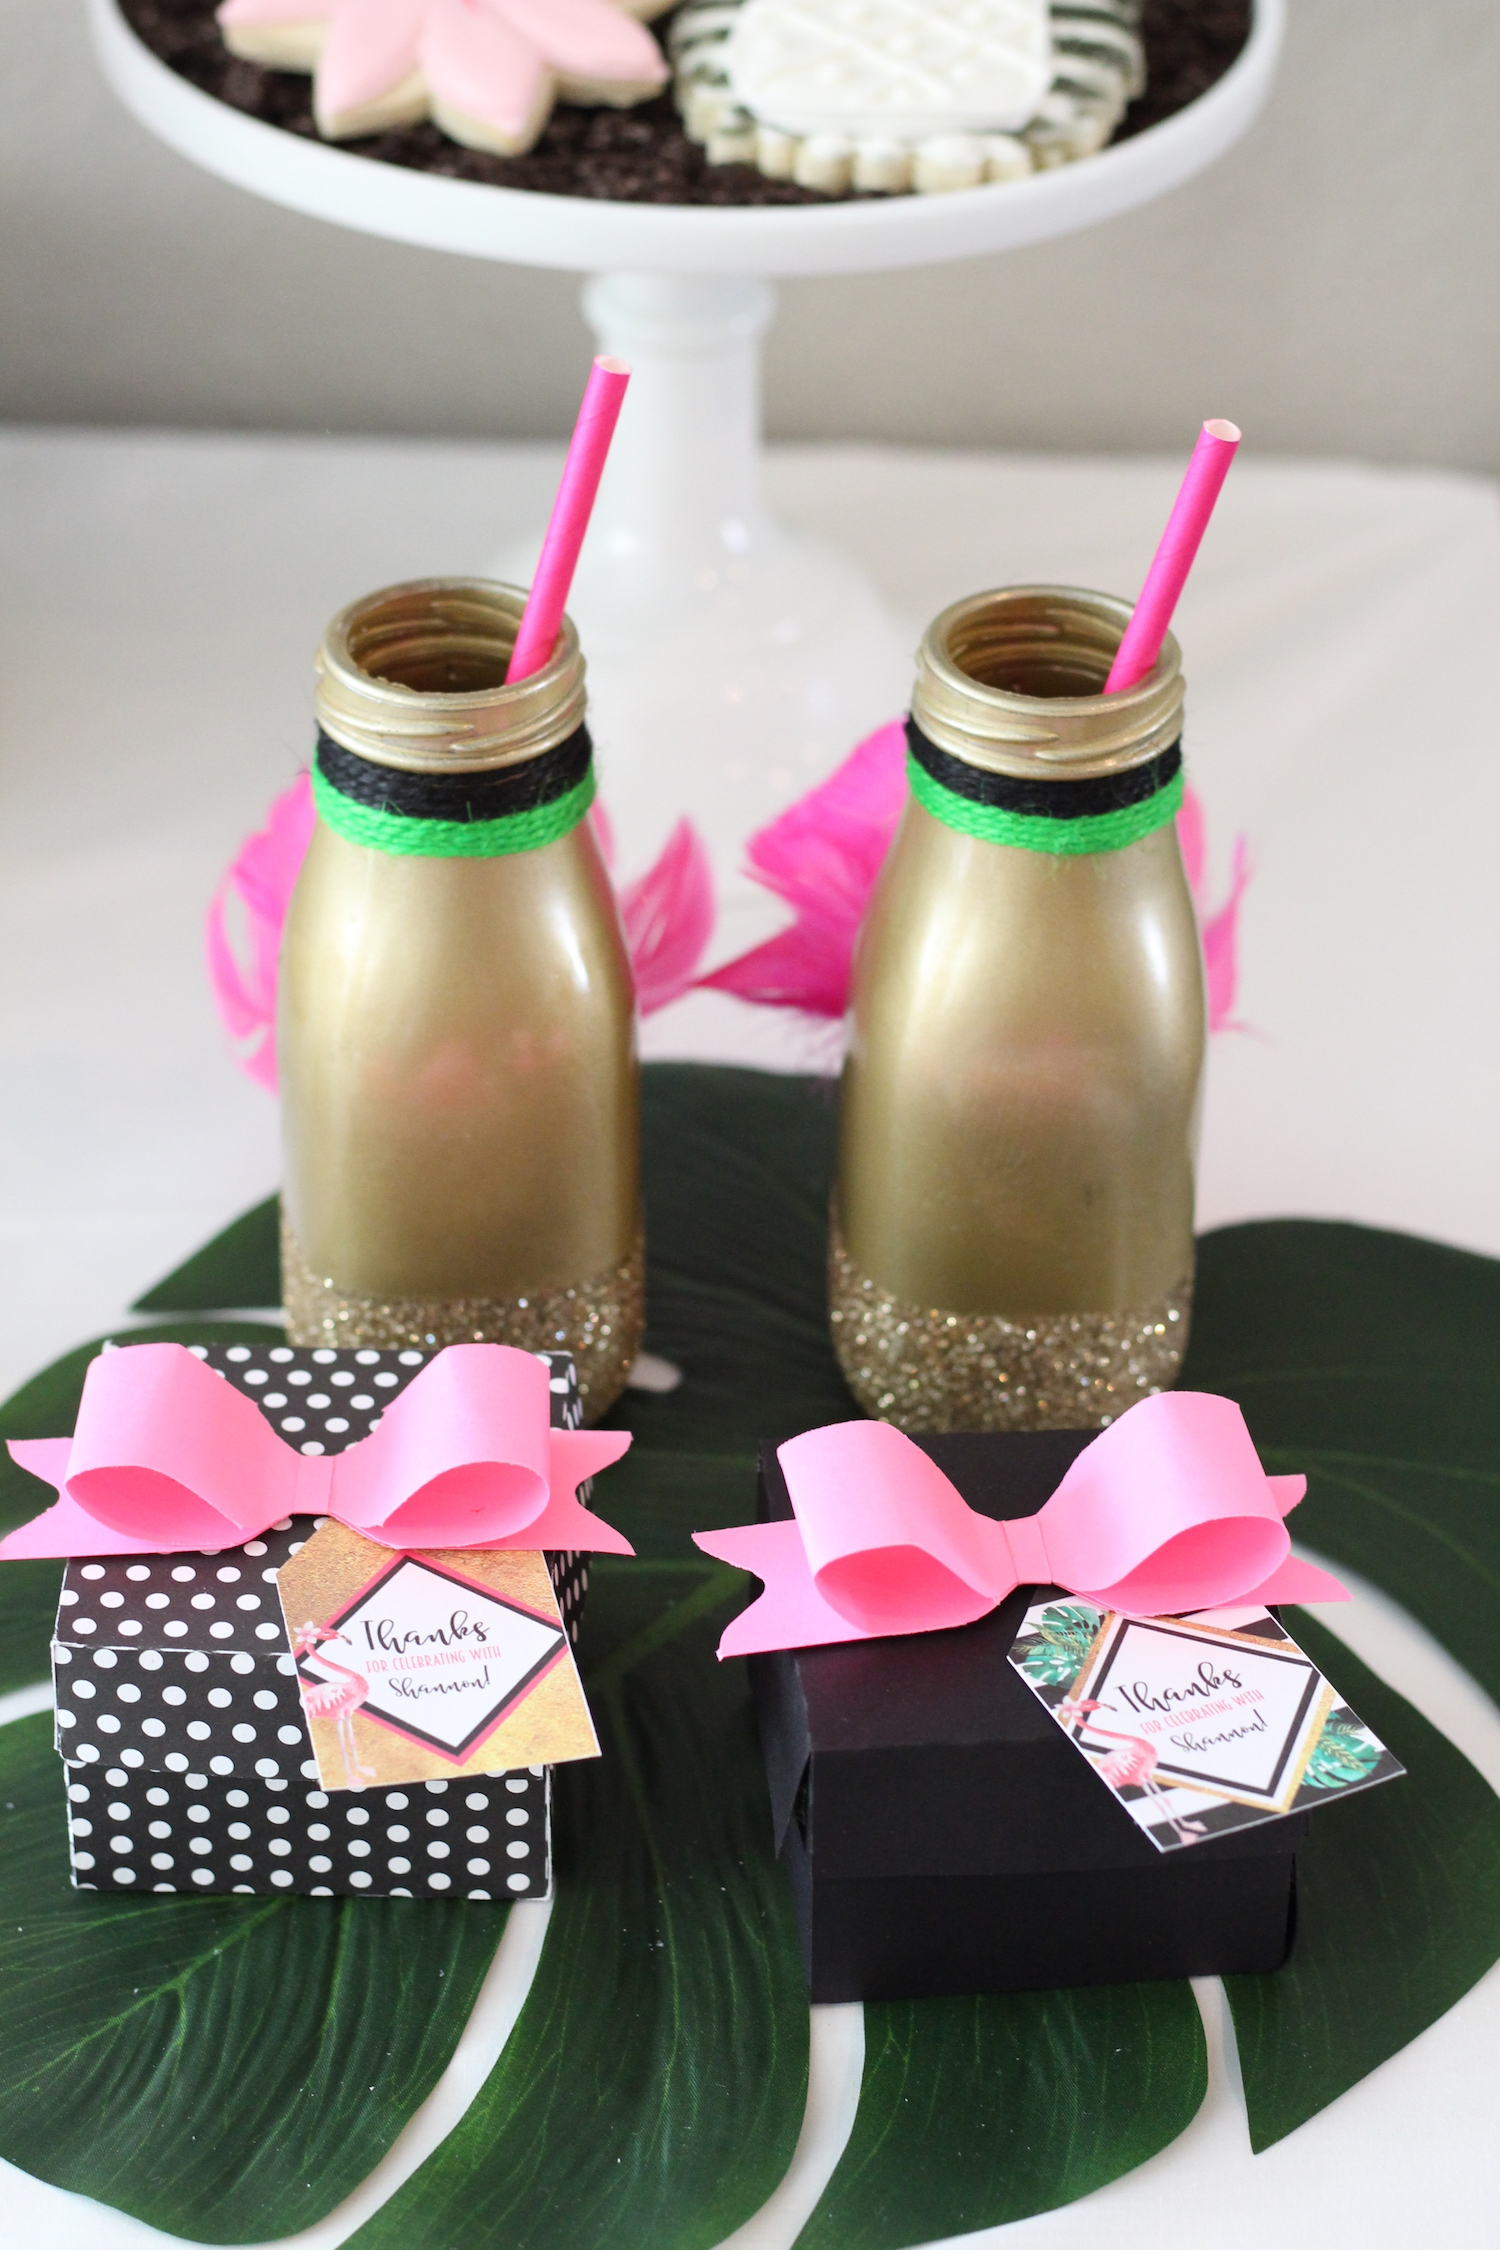 Party Inspiration for a Let's Flamingo Bachelorette Party or Bridal Shower - a fun flamingo party theme in pink, white, black, green and gold. Gold Painted Glasses with Feathers. As seen on www.BrendasWeddingBlog.com